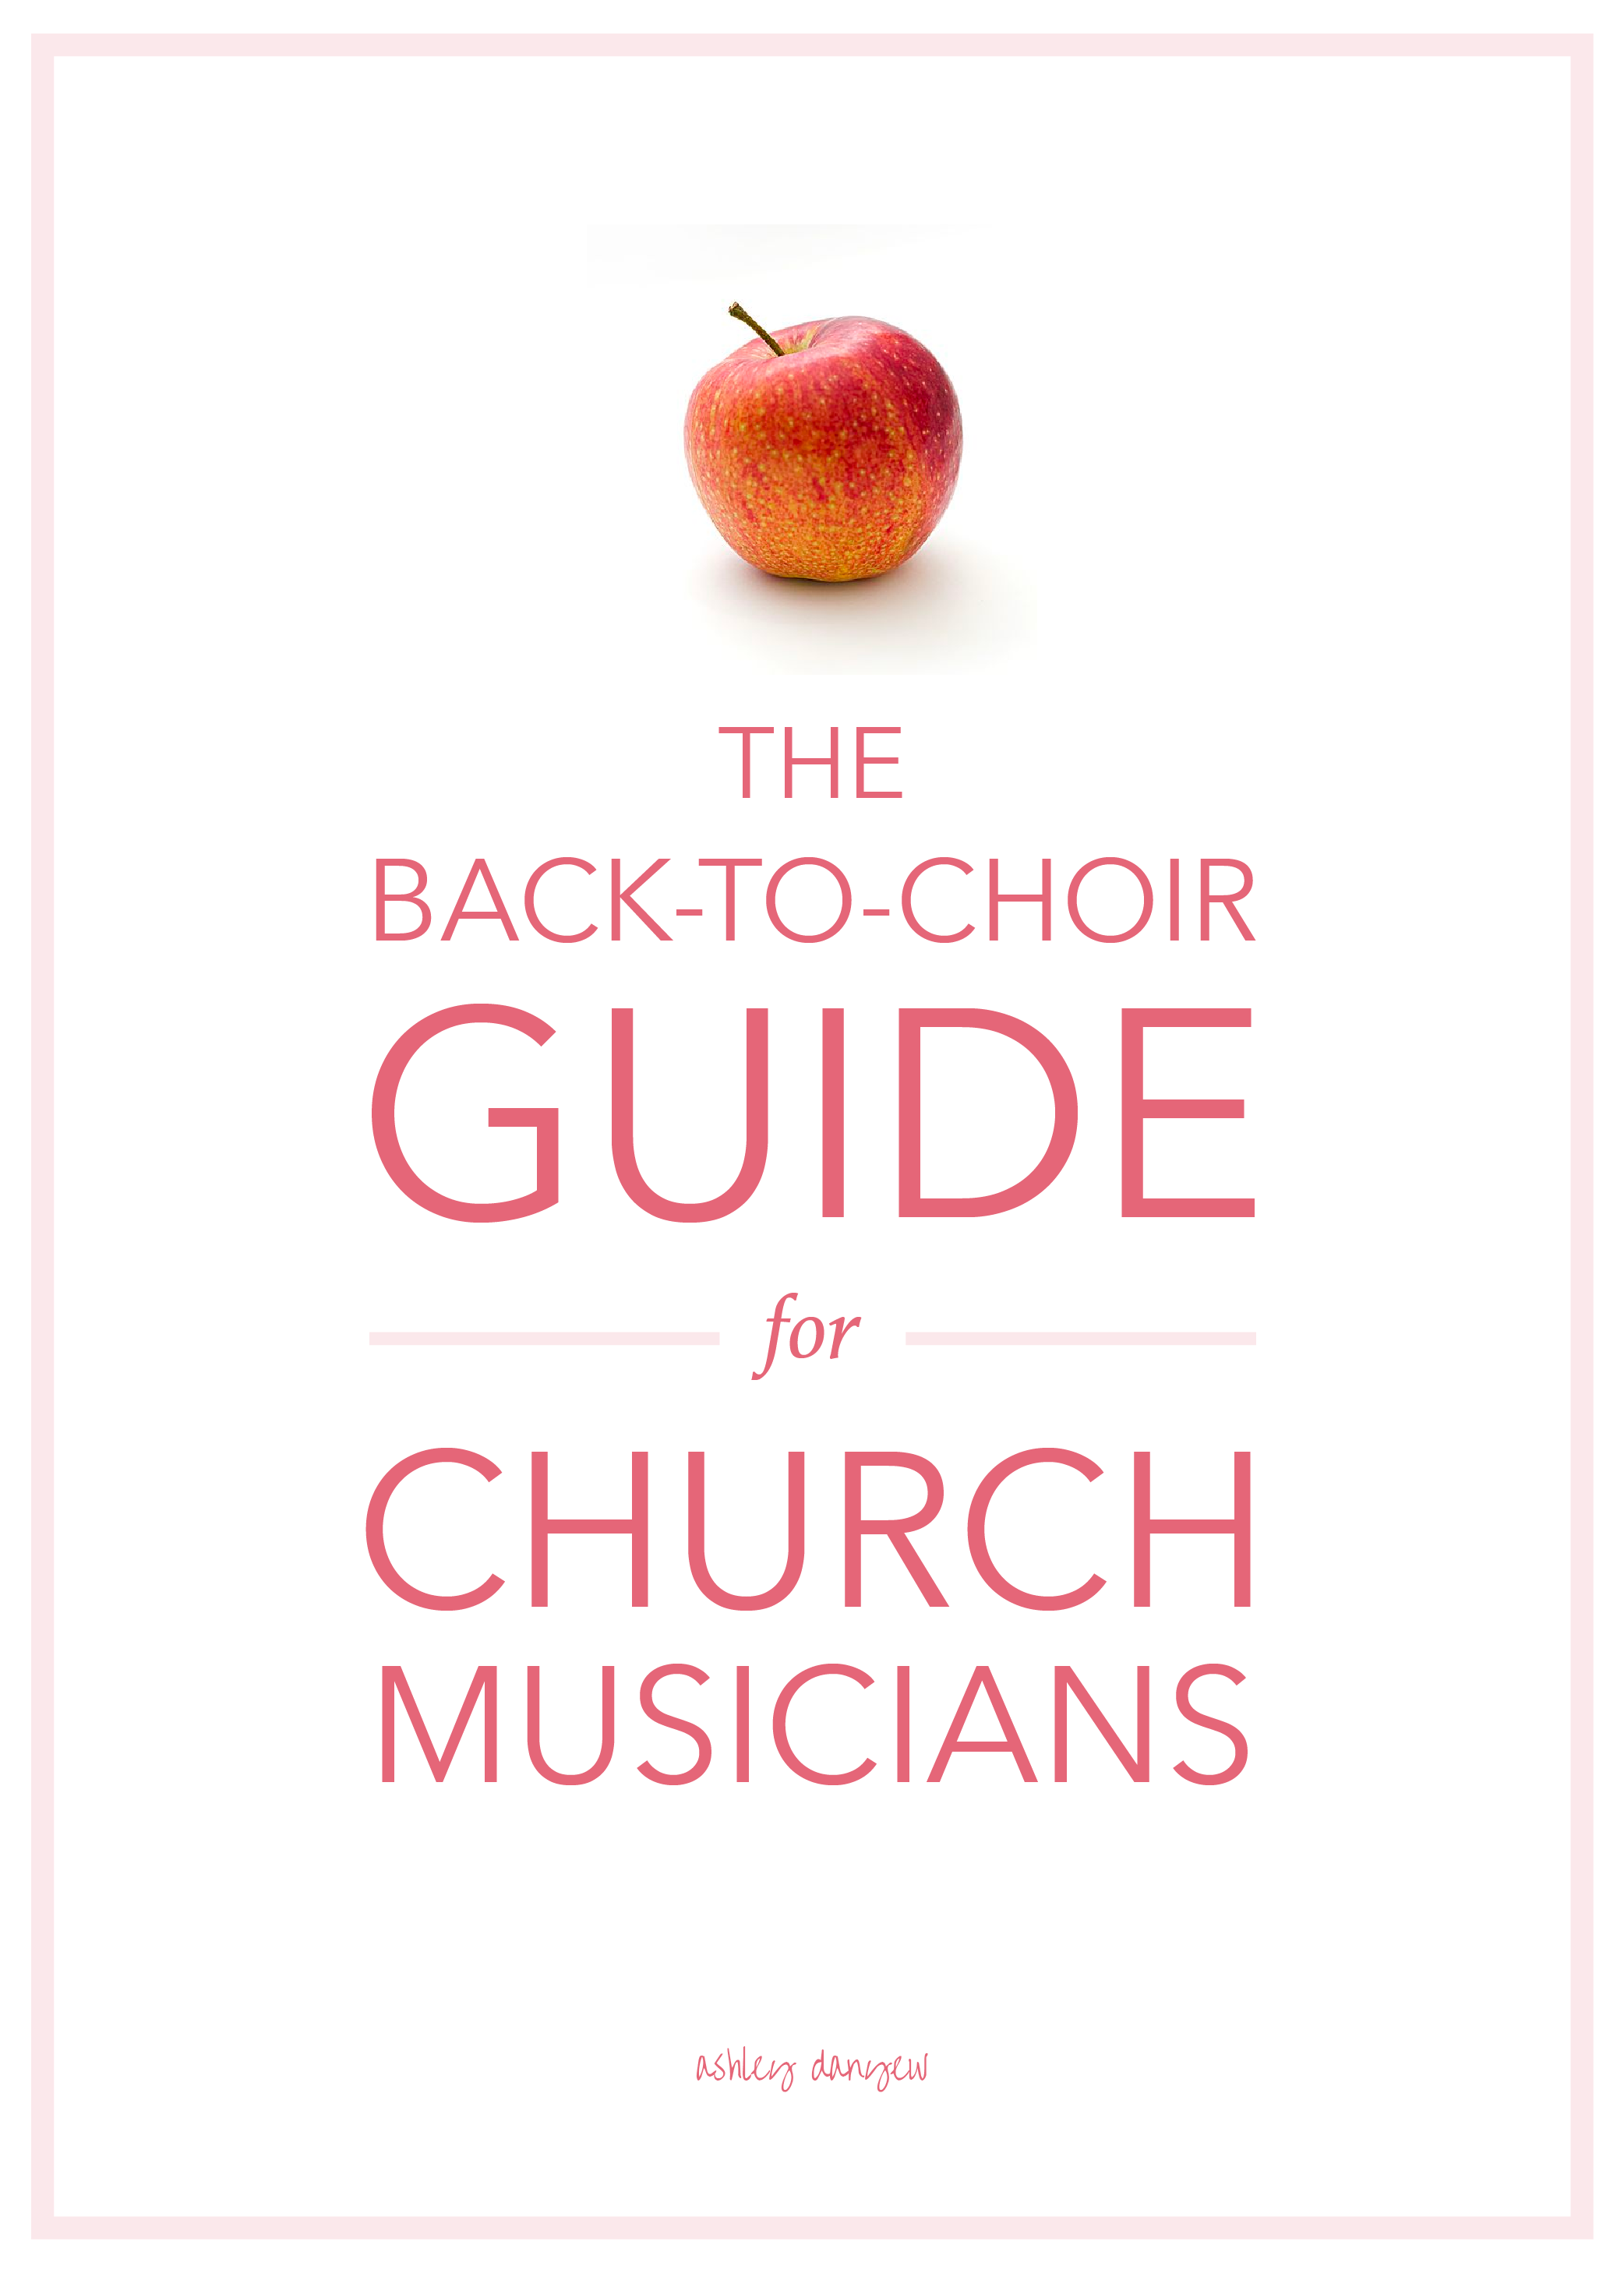 The Back-to-Choir Guide for Church Musicians-38.png